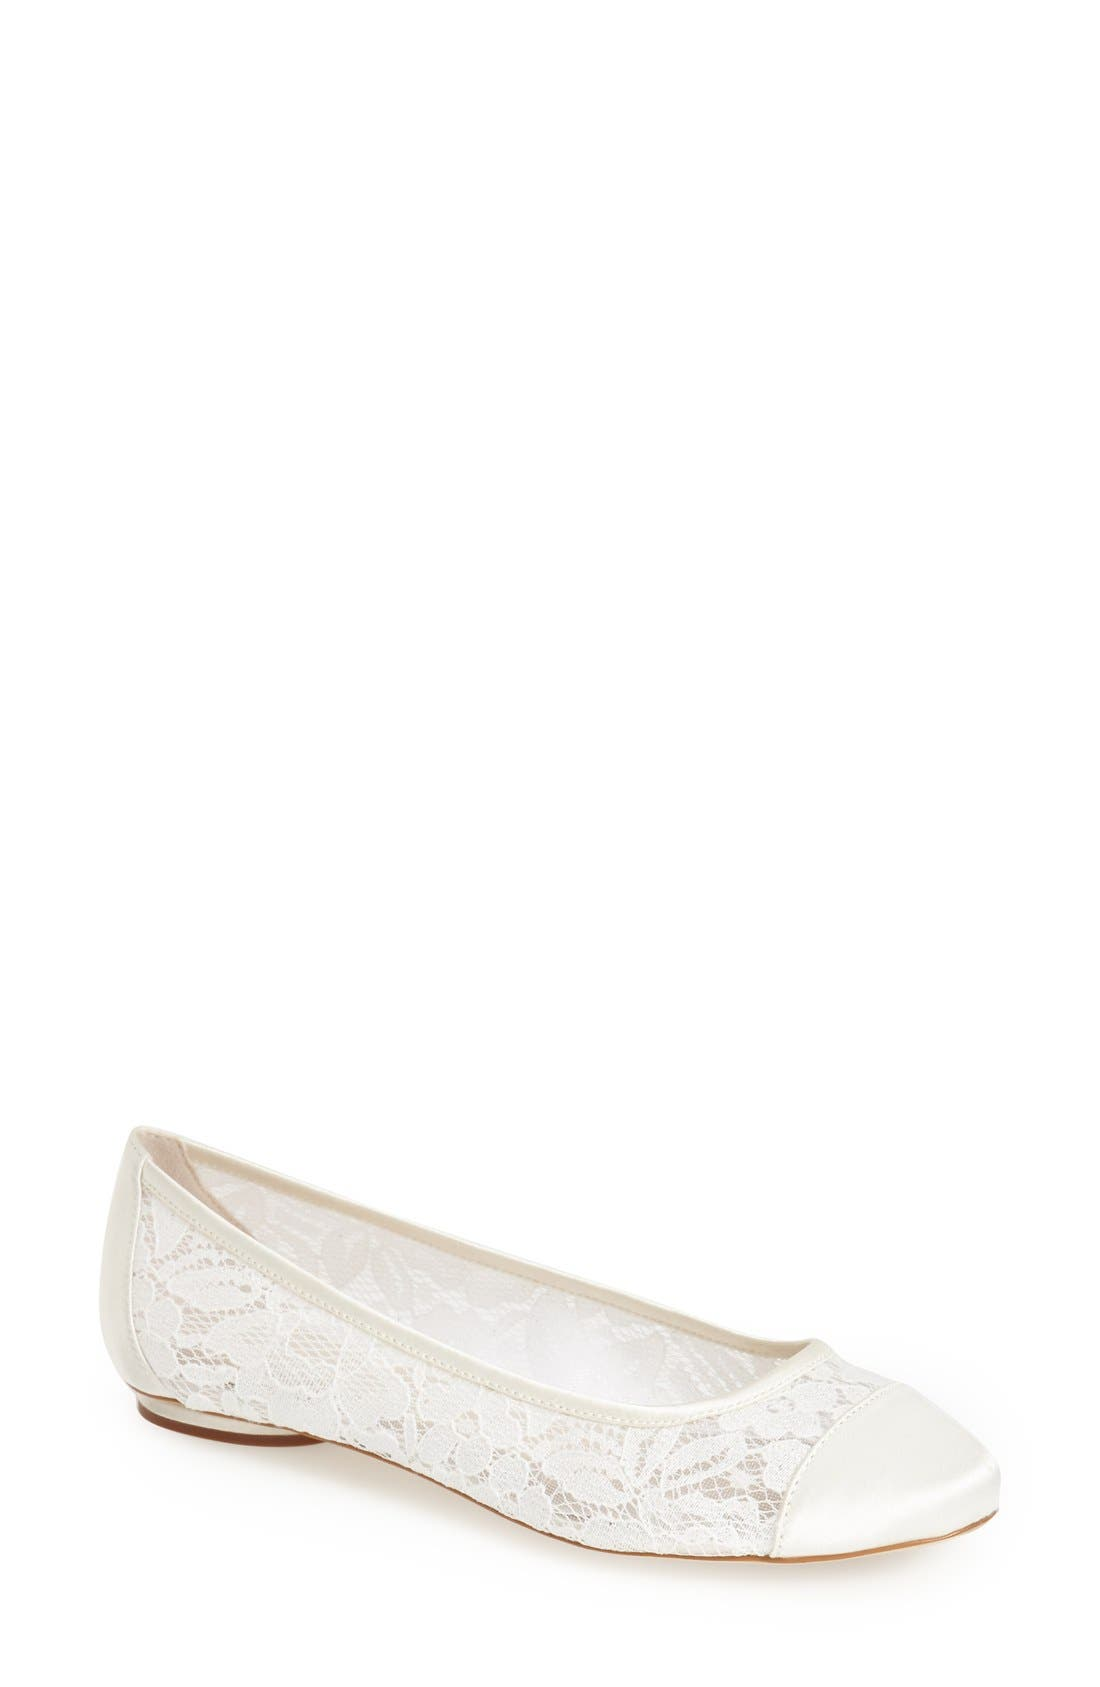 'Sweetie' Lace Cap Toe Ballet Flat,                             Main thumbnail 1, color,                             IVORY LACE/ MESH